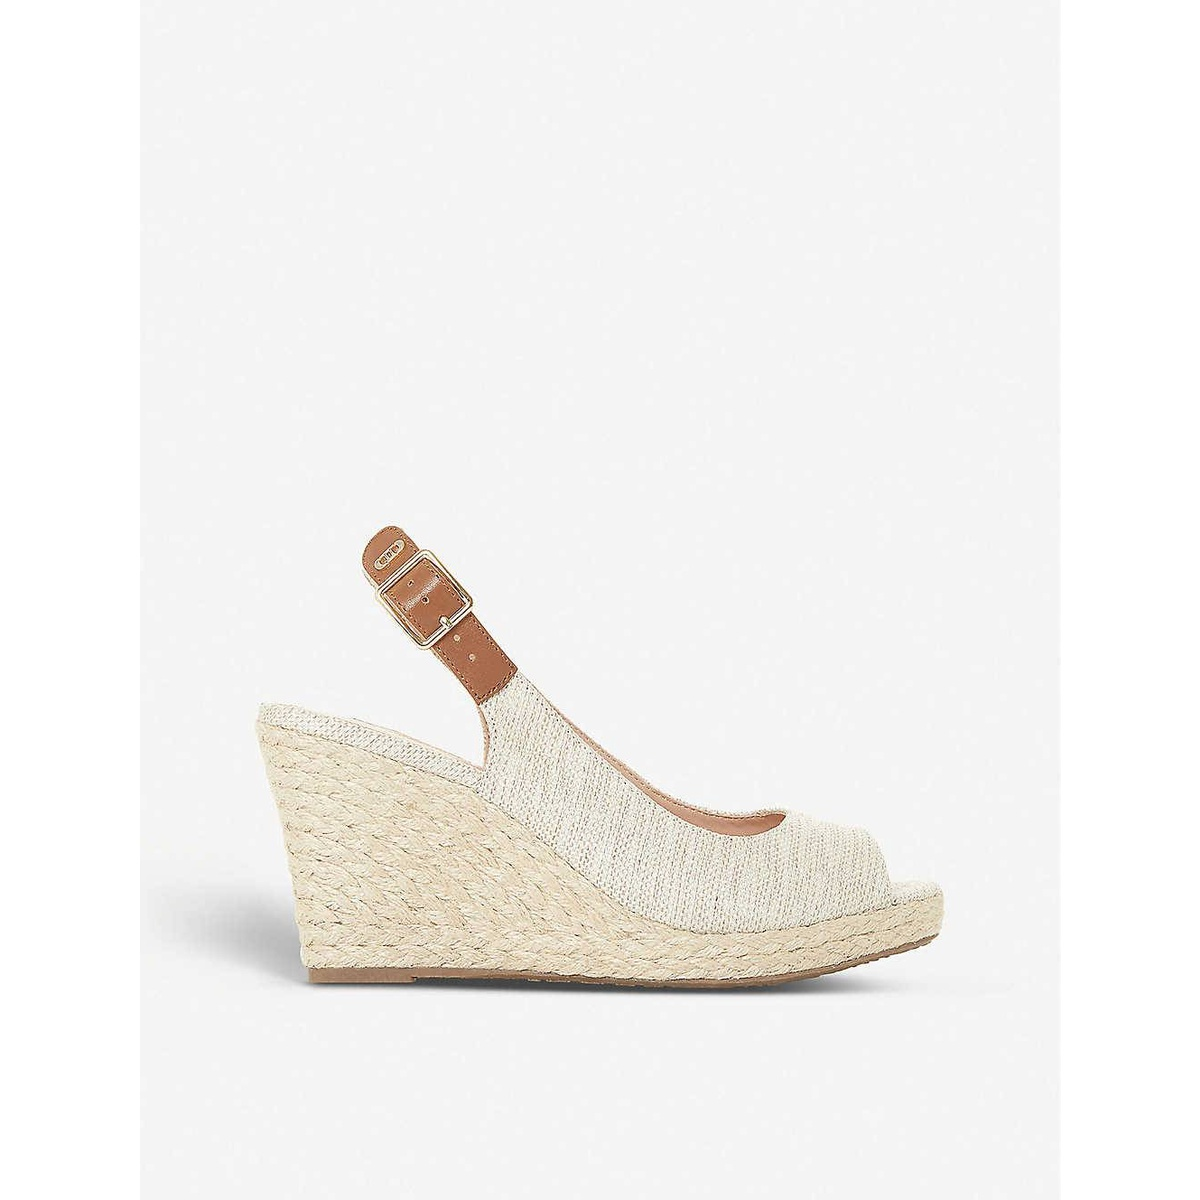 Purchase dune London kicks canvas wedge sandals 2021 new luxury and casual fashion